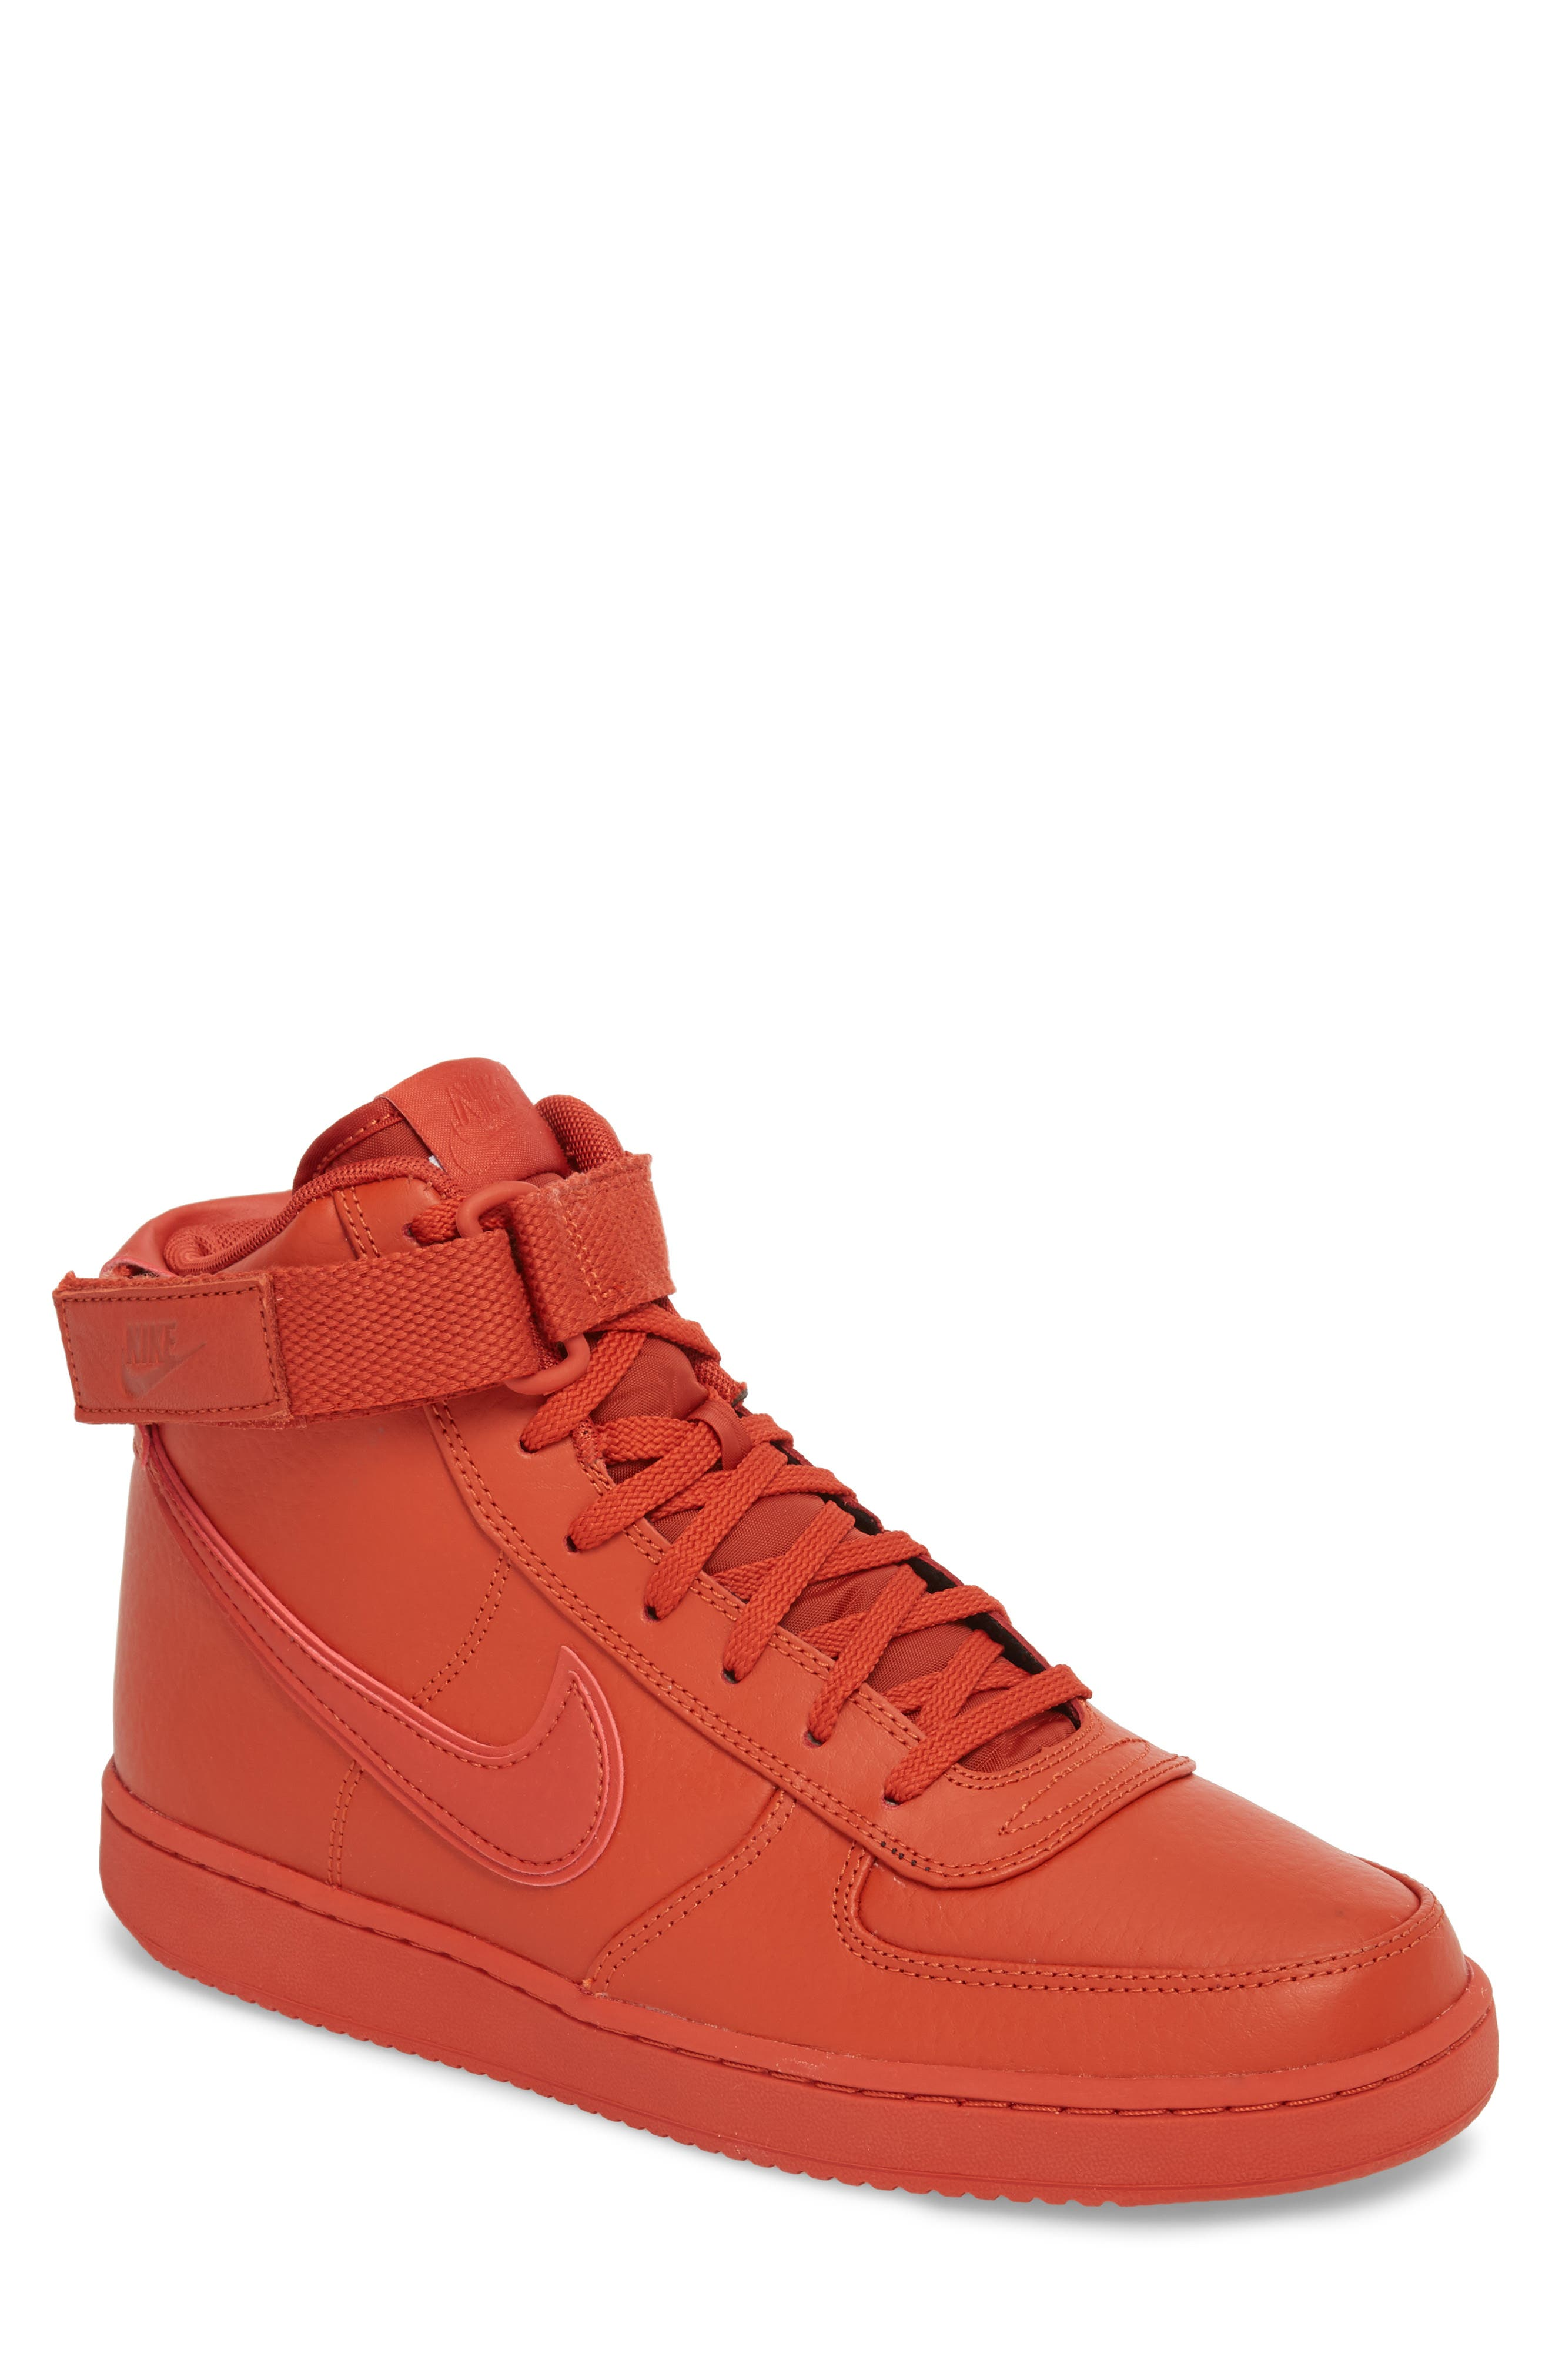 Vandal High Supreme Leather Sneaker,                         Main,                         color, DRAGON RED